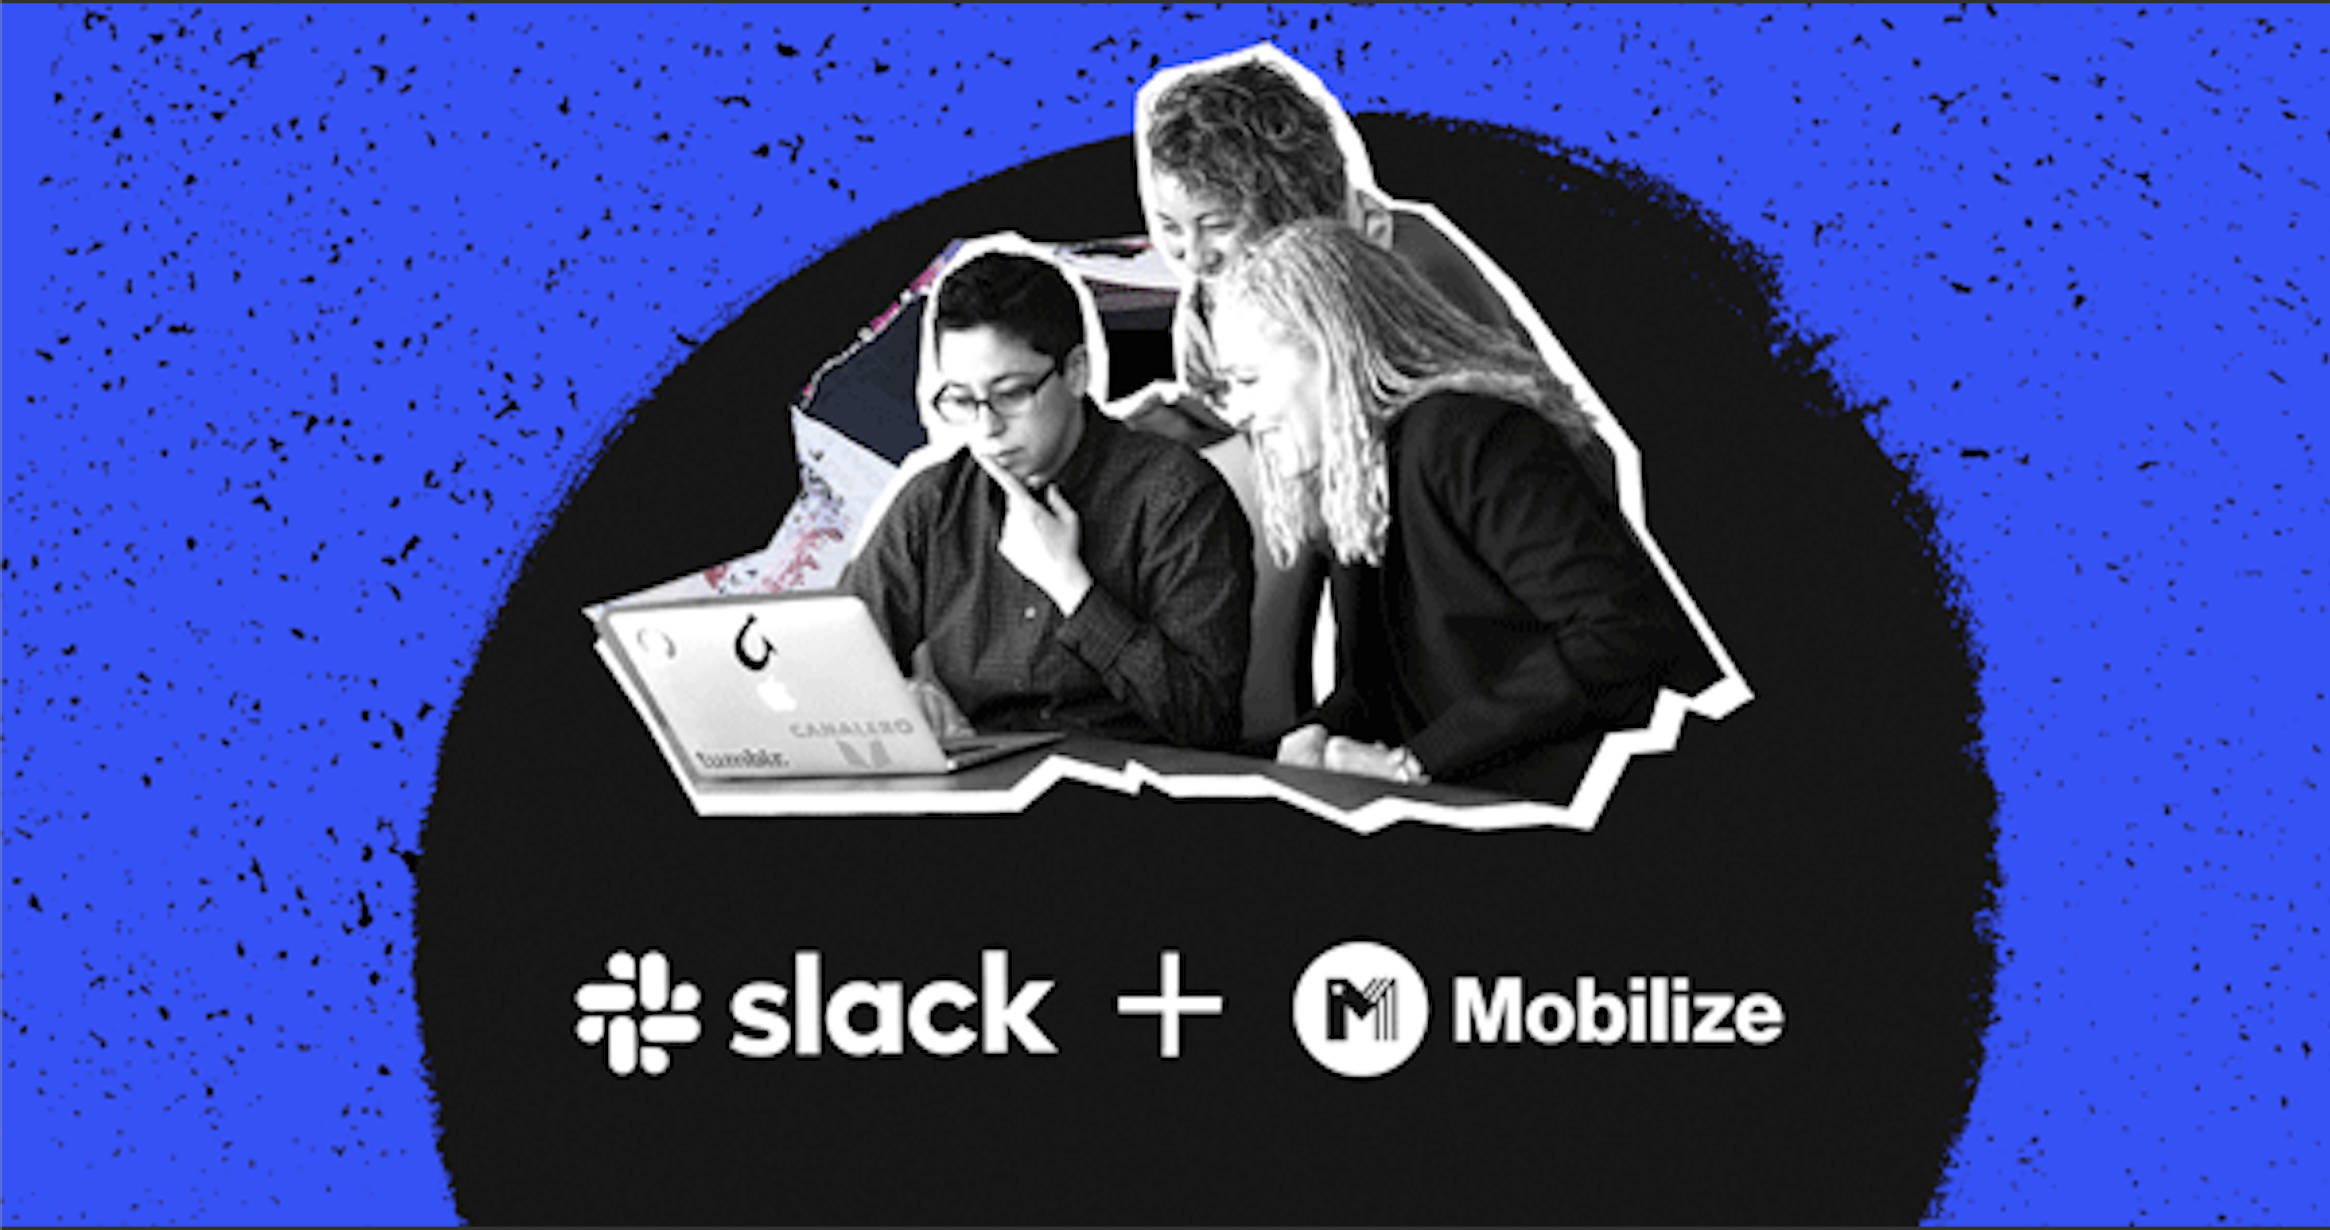 Use Slack and Mobilize together to communicate with volunteers.